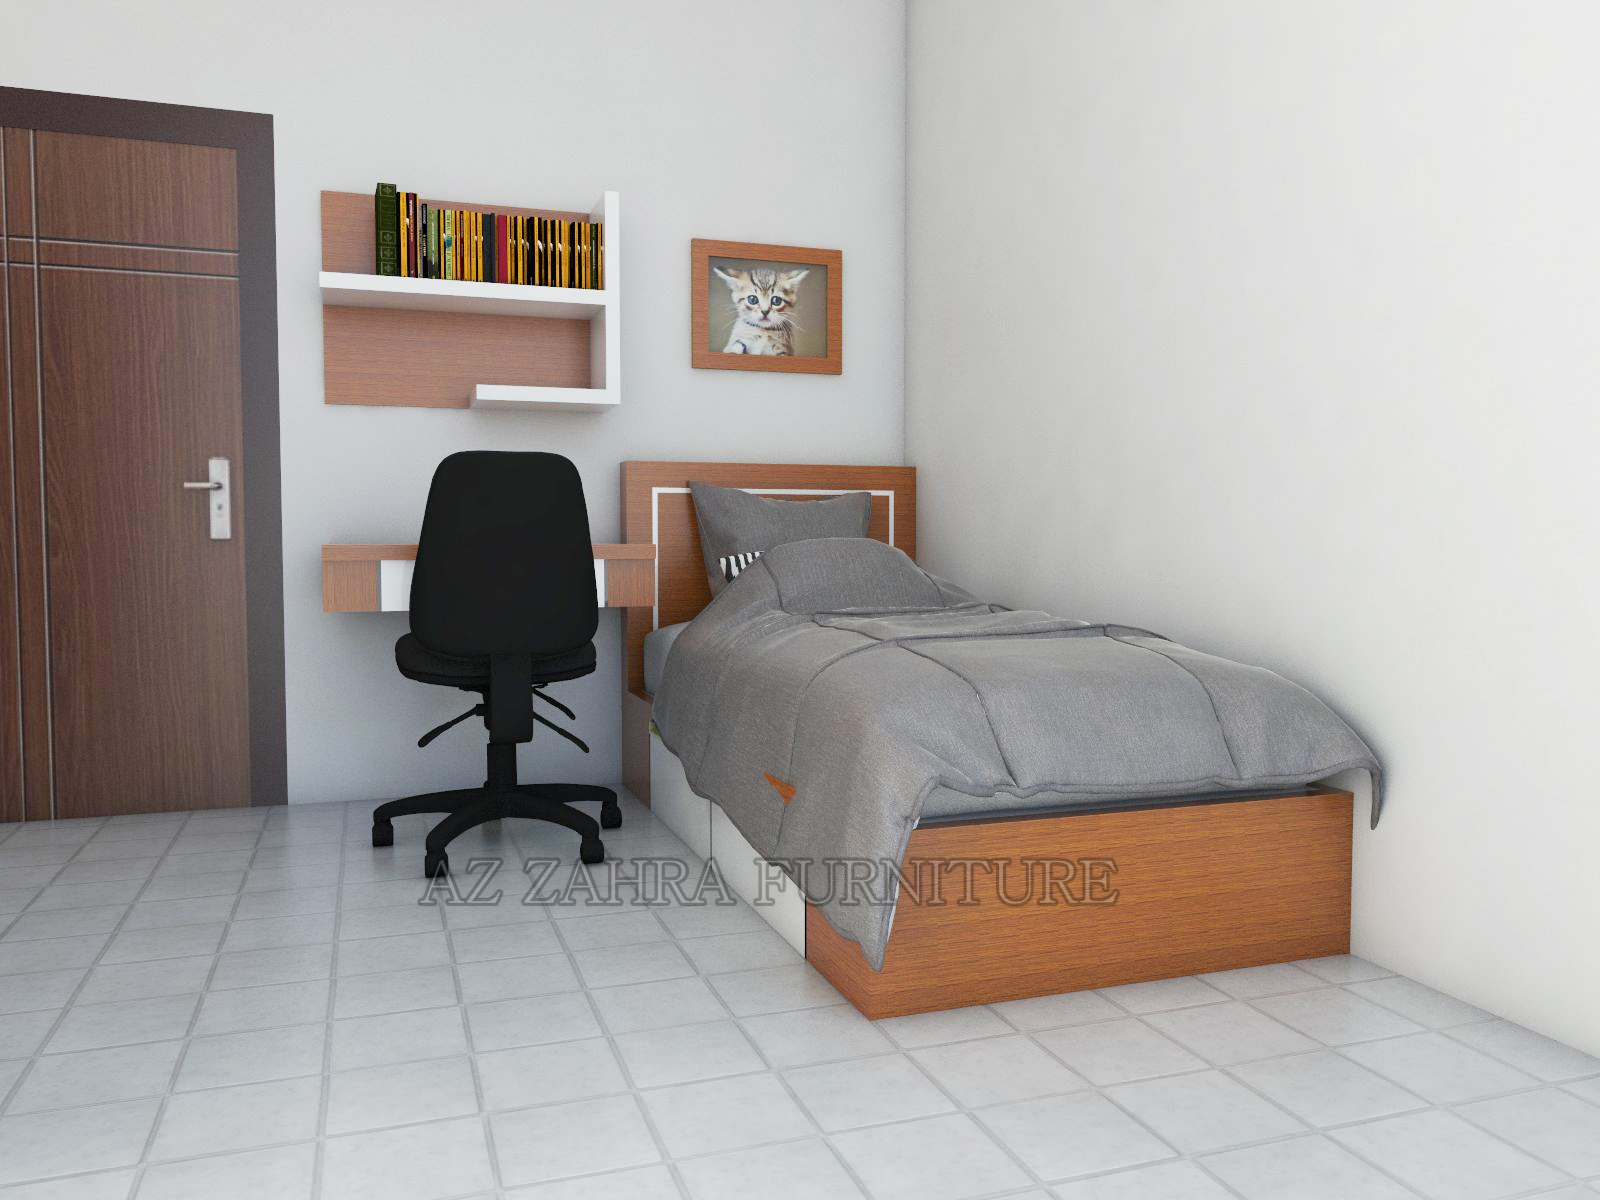 furniture kamar kost pekanbaru azzahra furniture